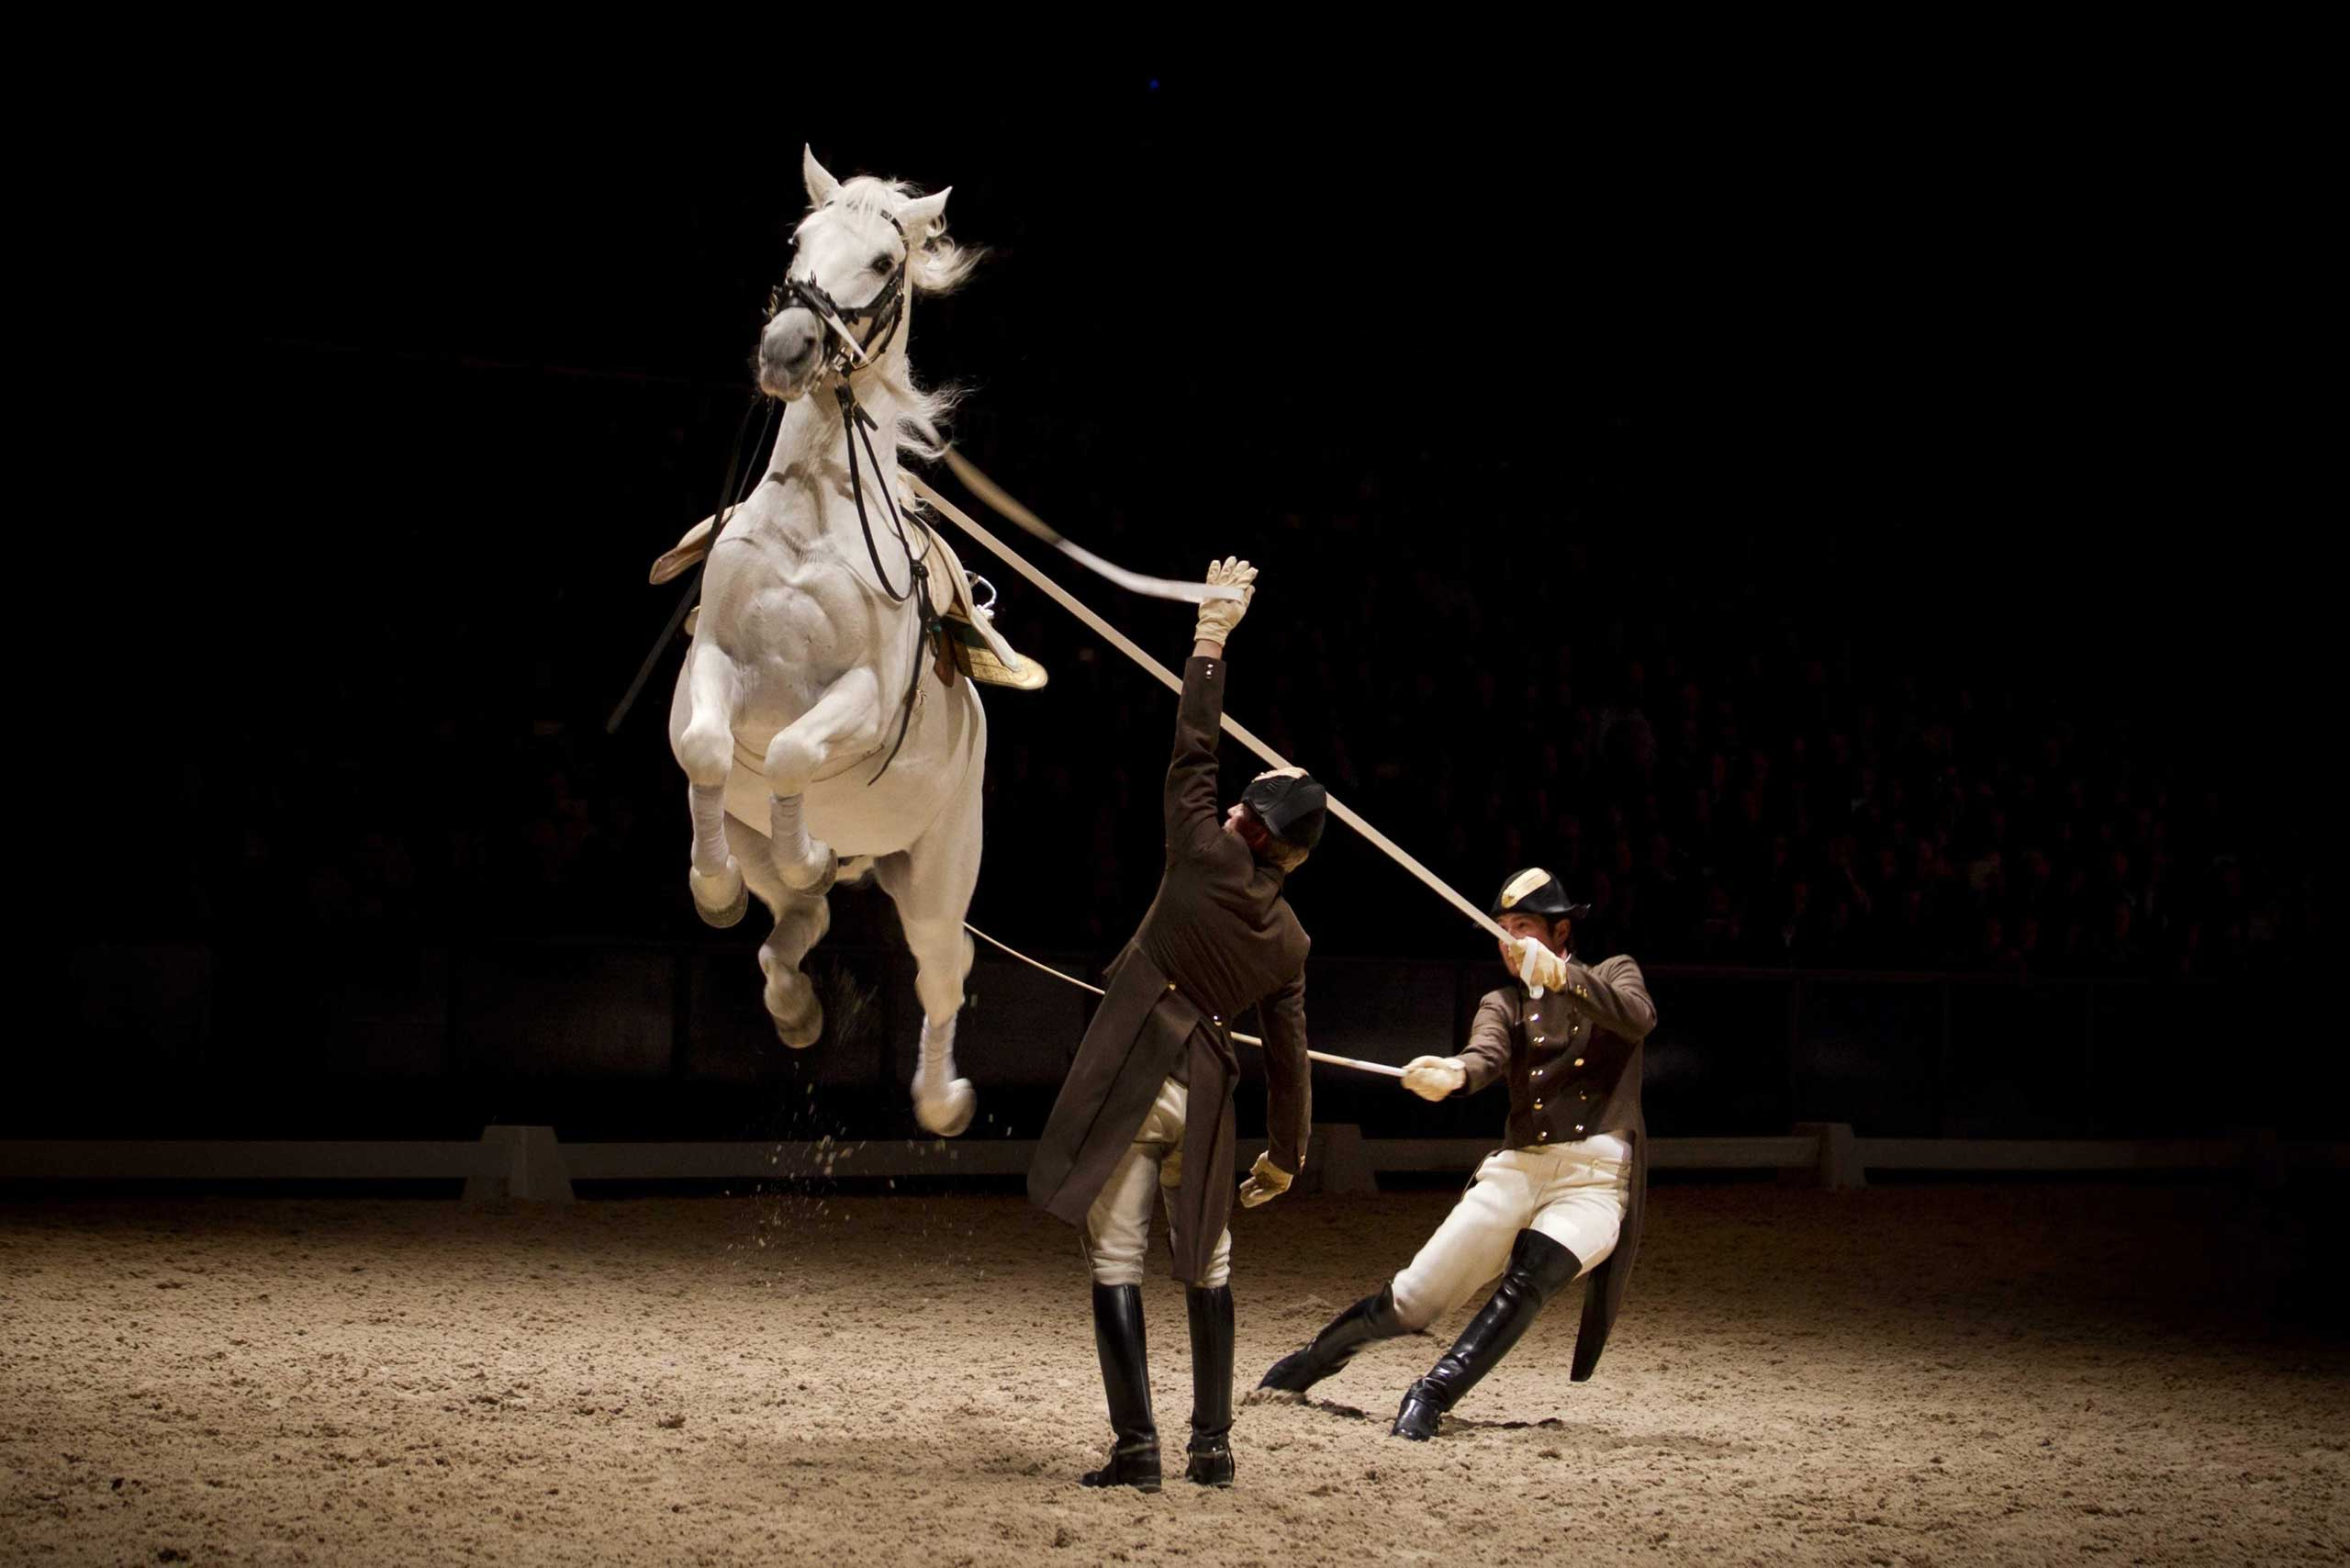 A Lipizzan horse is seen during a show of the Spanish Riding School from Vienna, Austria, at the Ziggo Dome arena in Amsterdam, The Netherlands, Nov. 29, 2014.